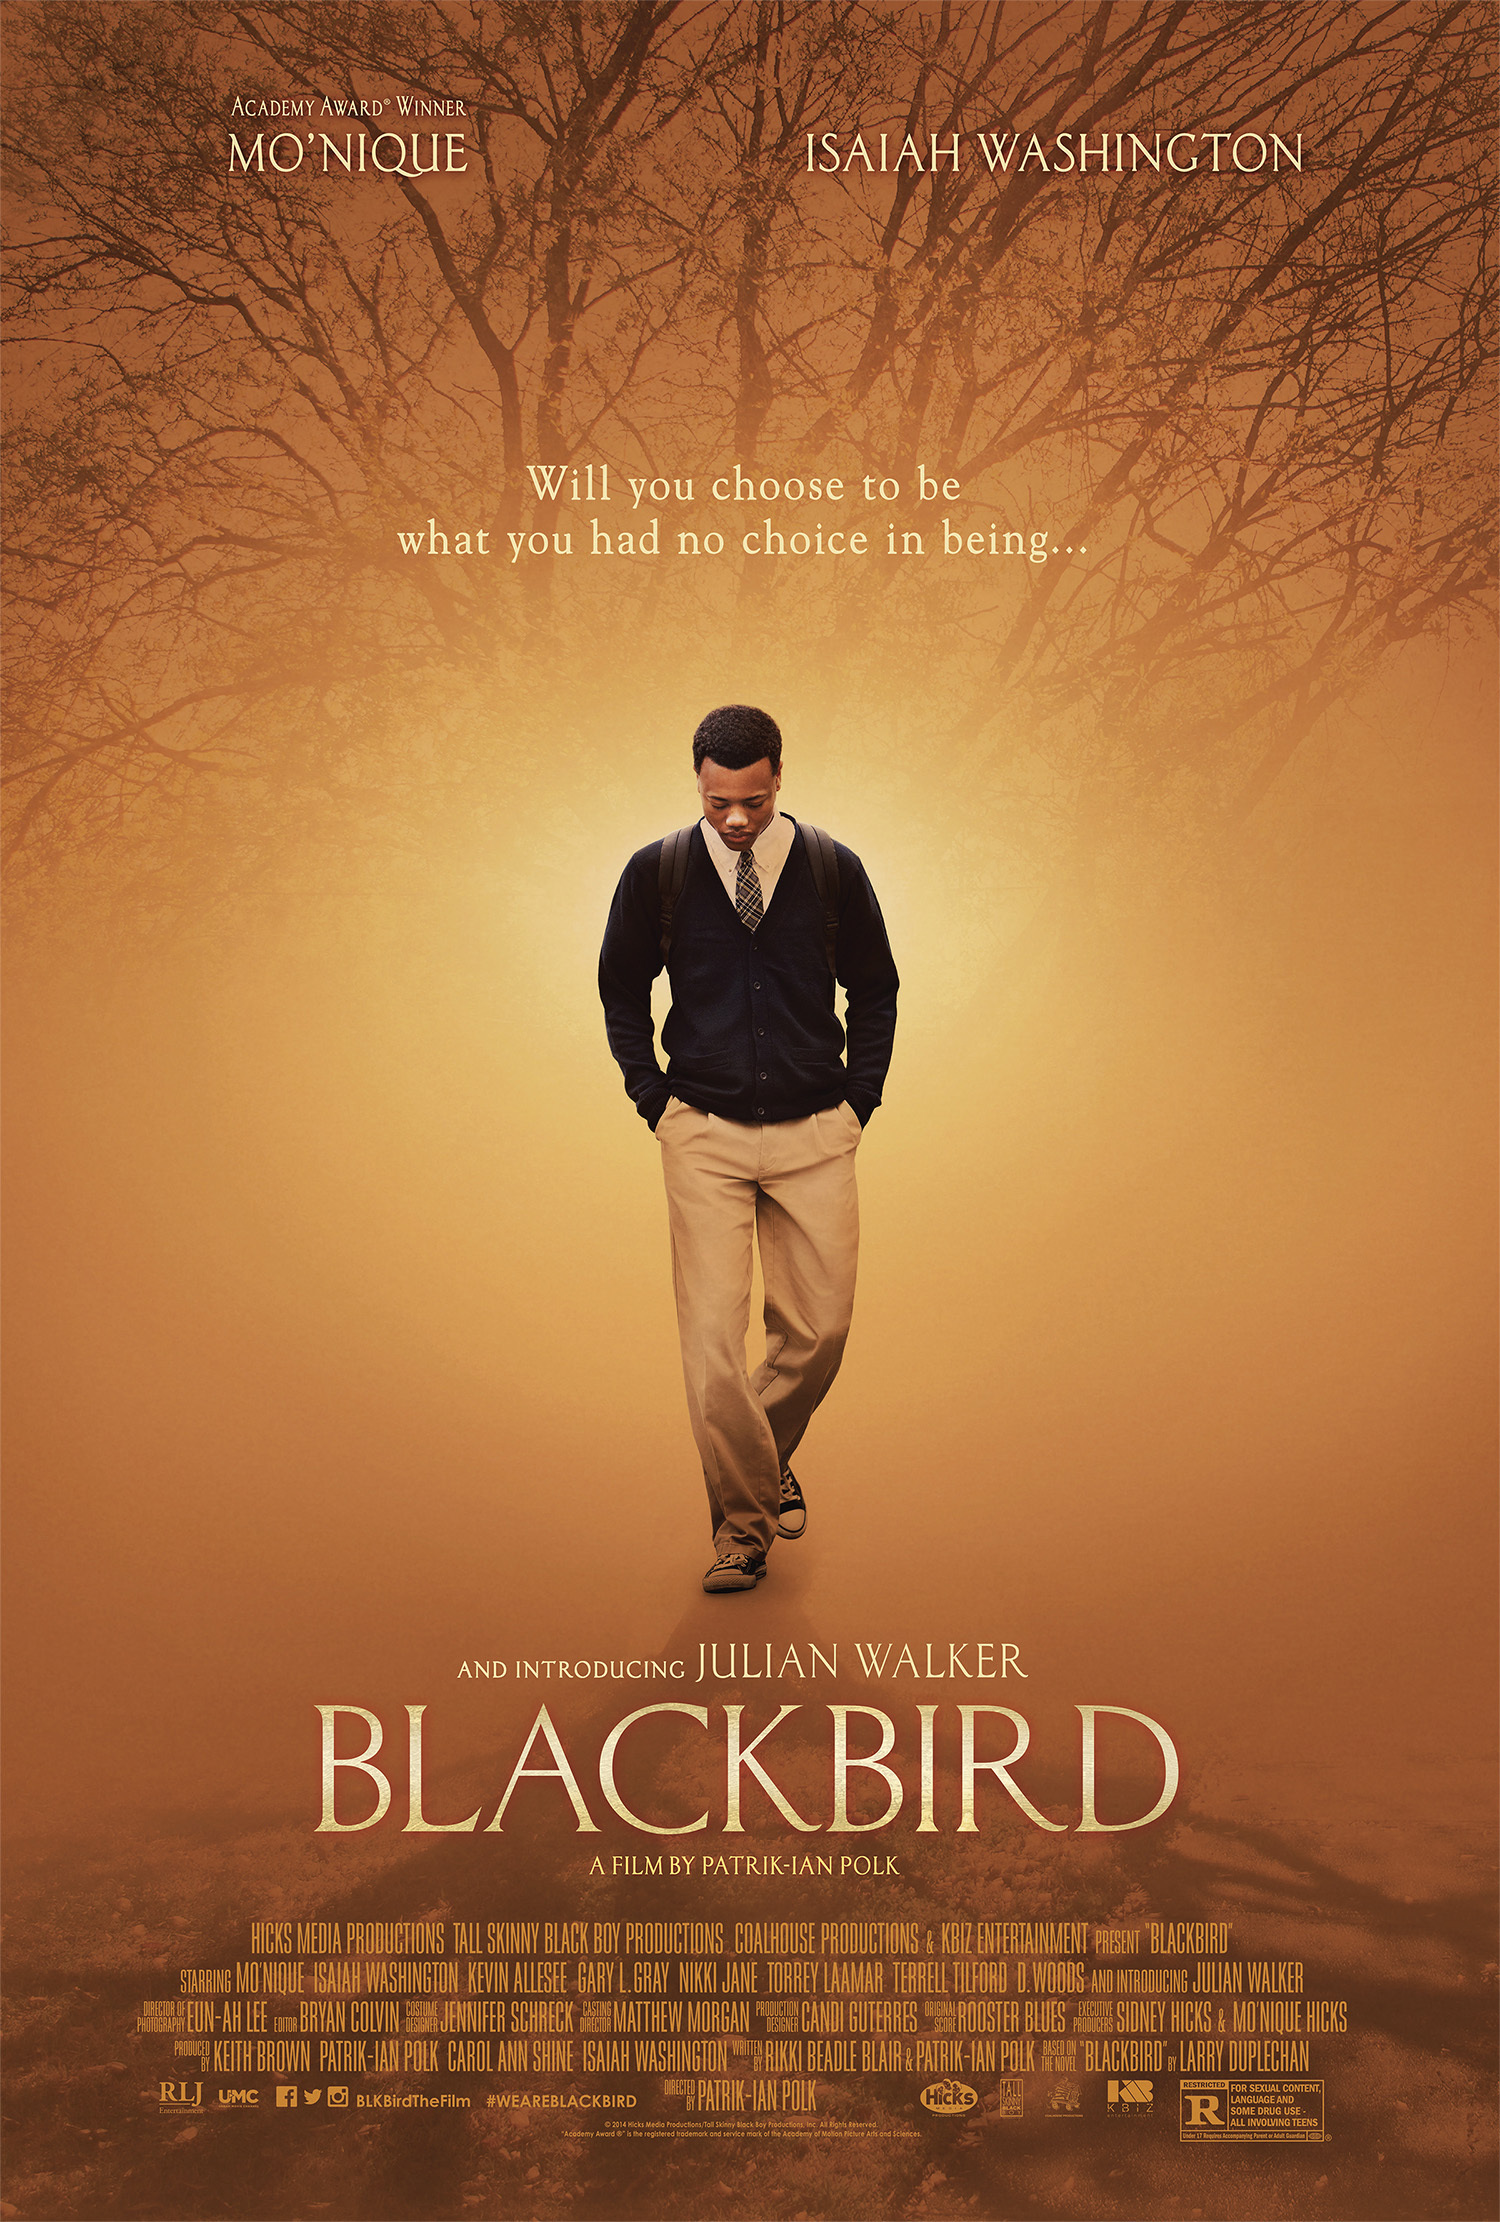 A Look At Blackbird The First Film On The New Black Netflix Code Switch Npr